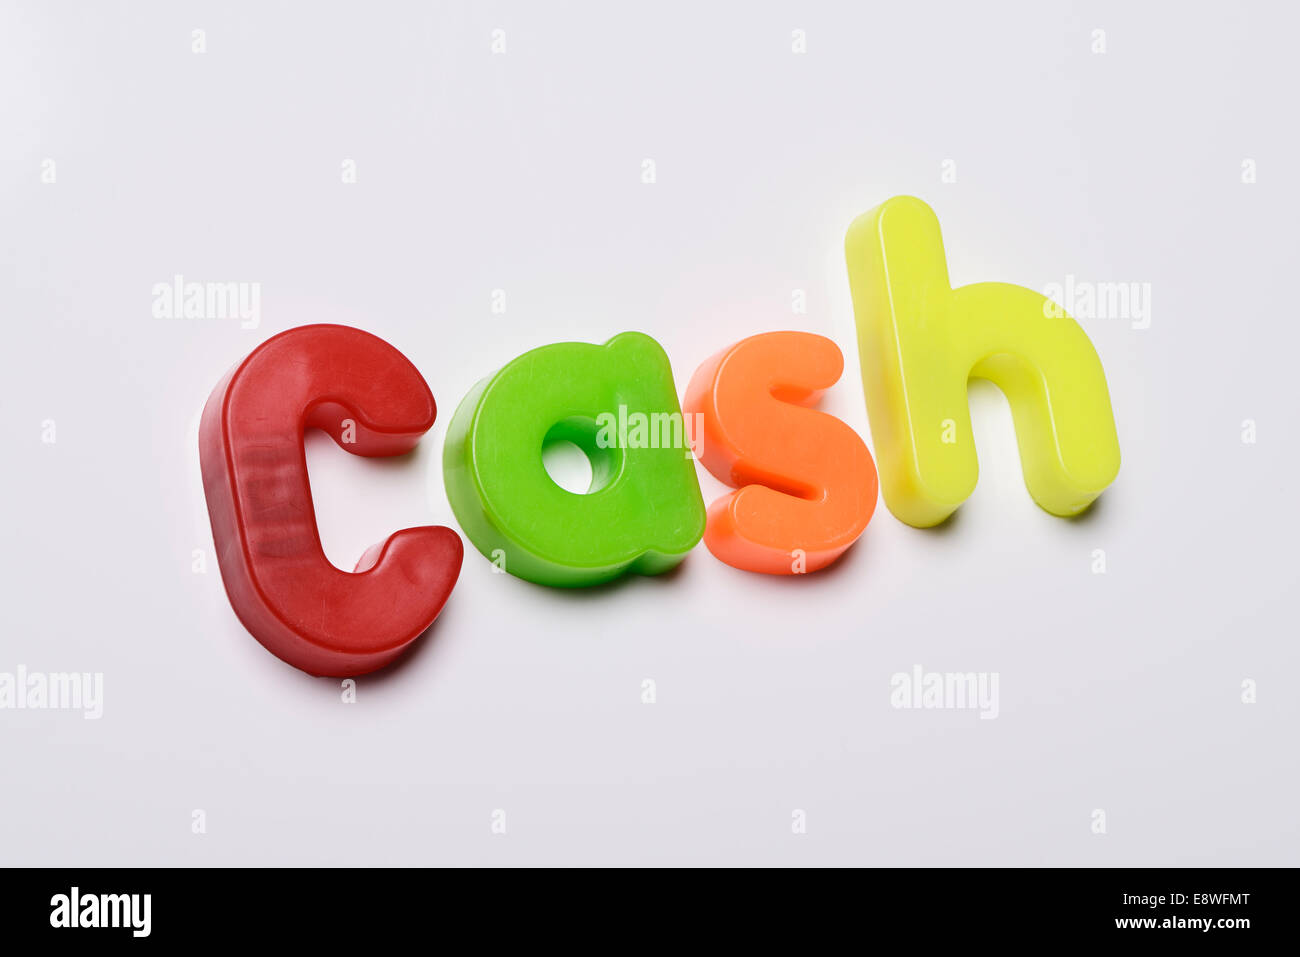 Cash made from magnetic fridge letters - Stock Image